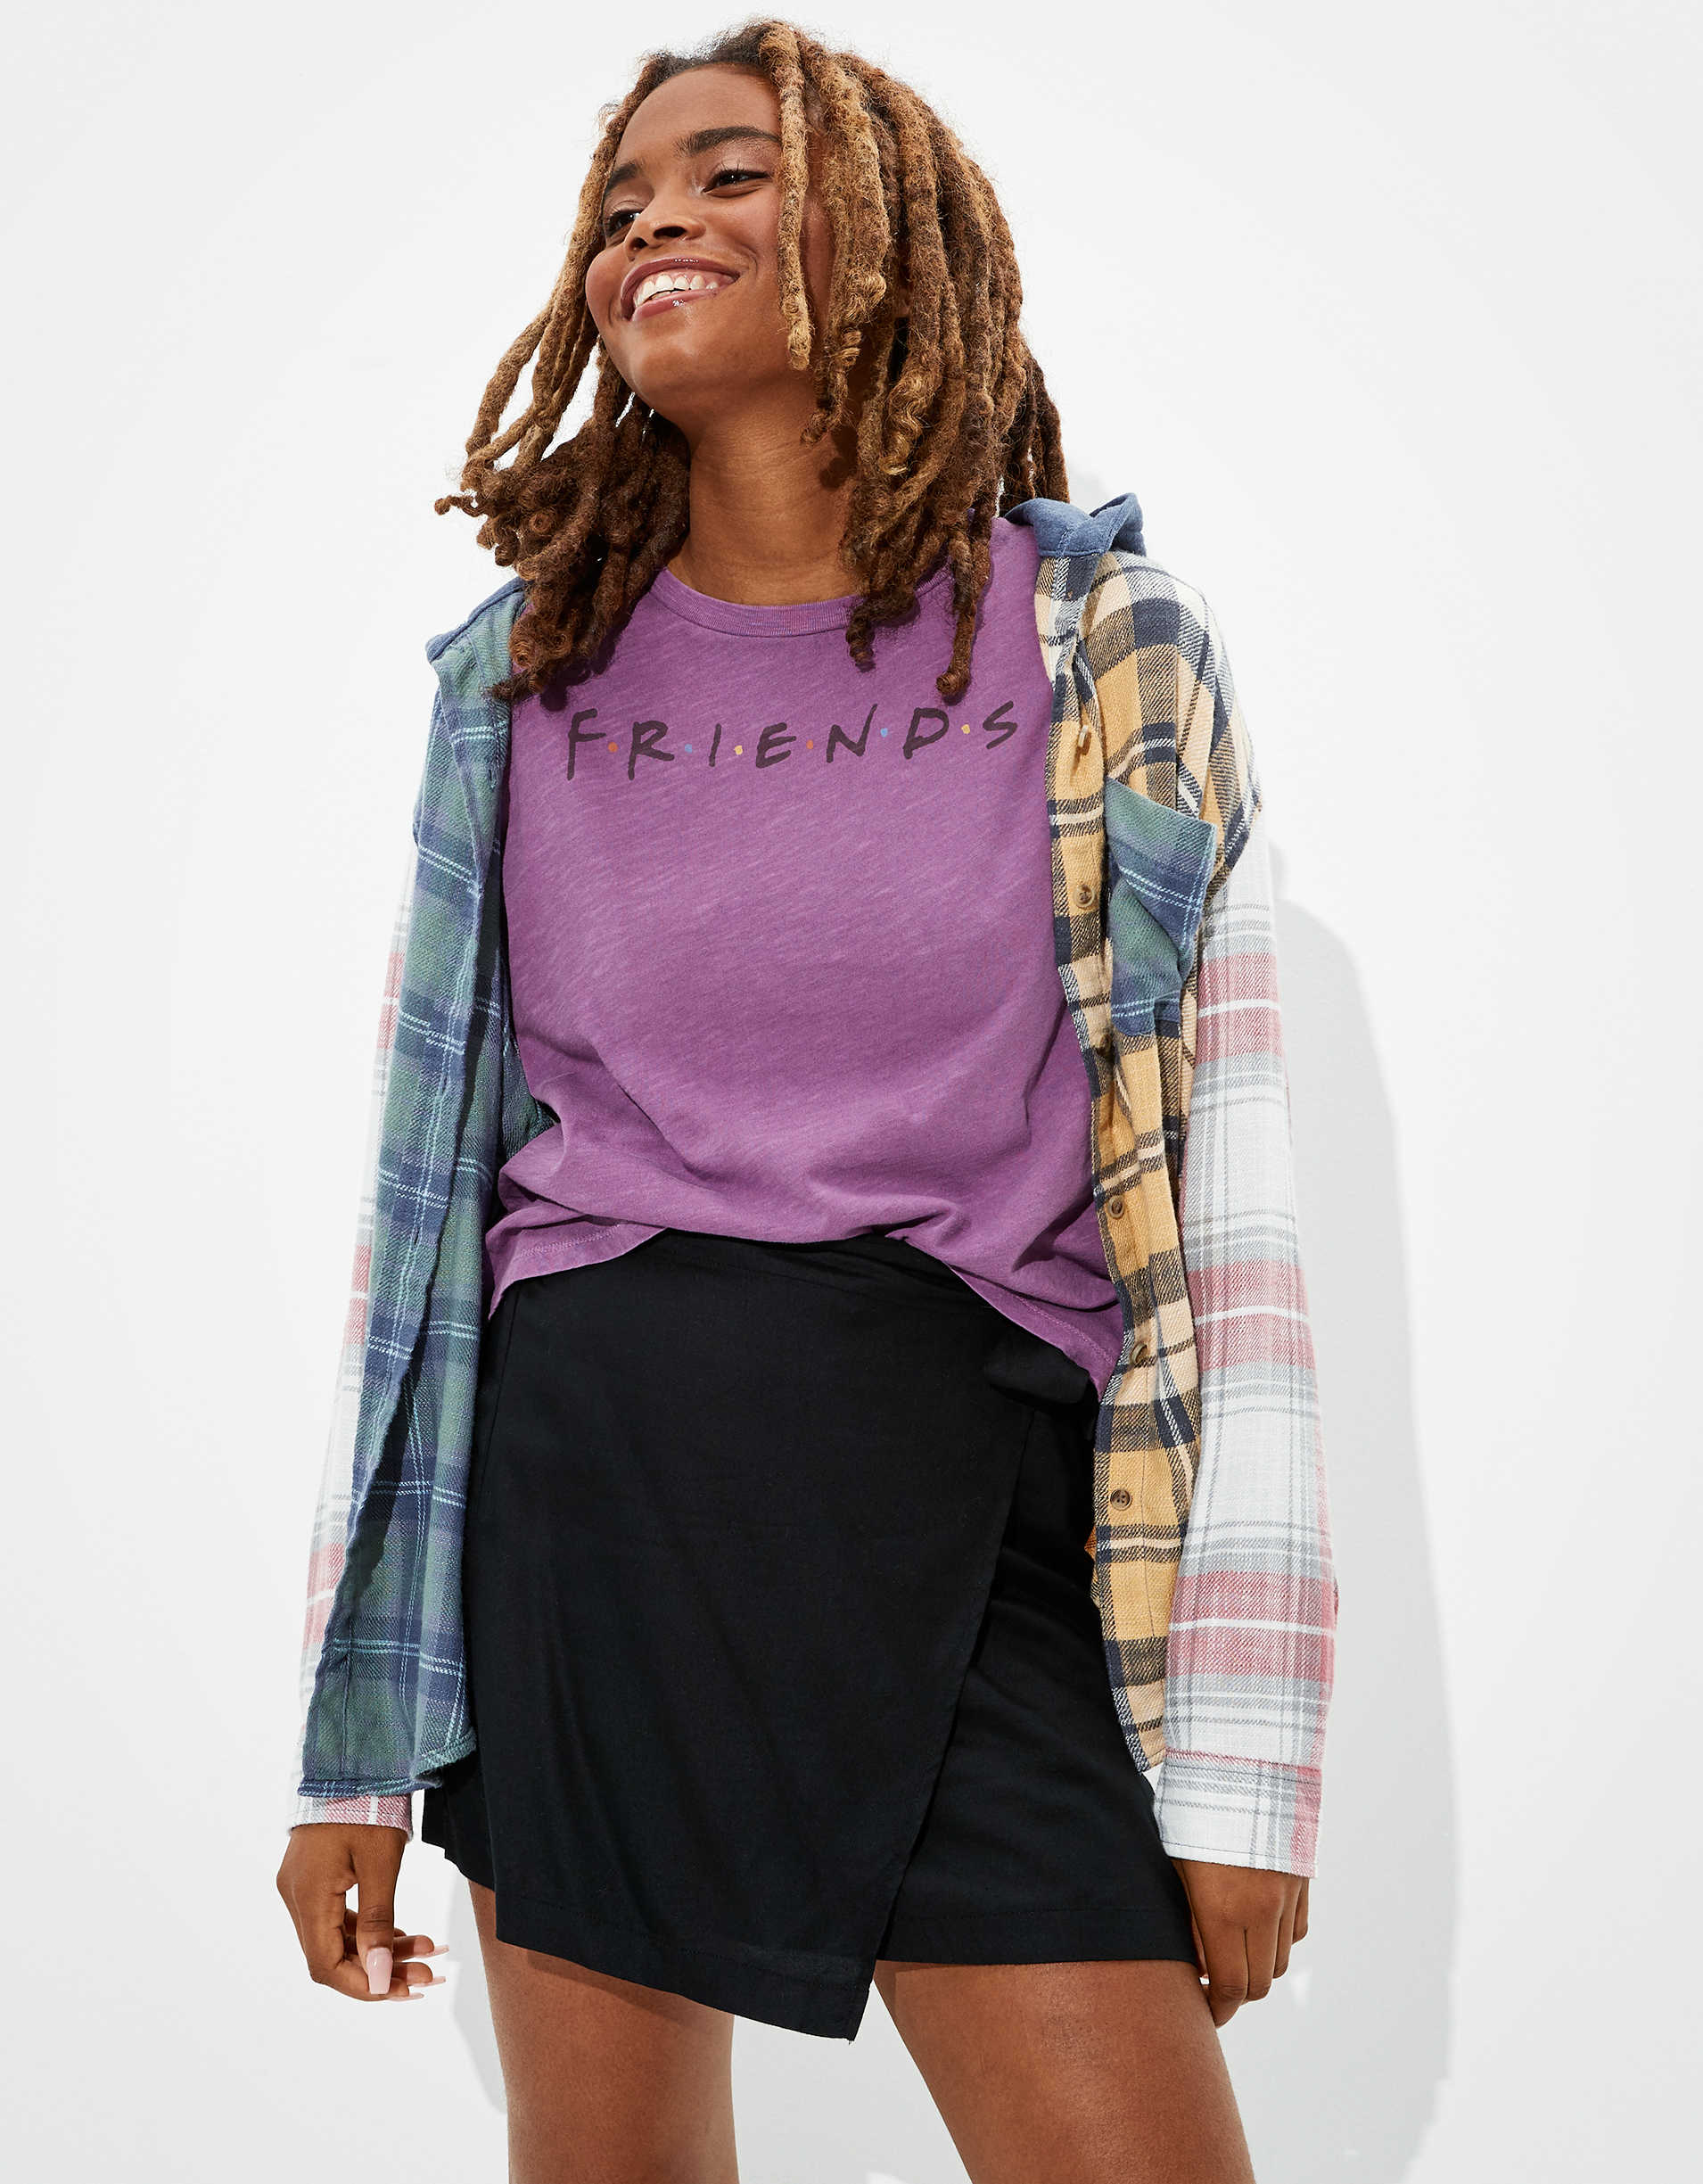 Tailgate Women's Friends Cropped T-Shirt